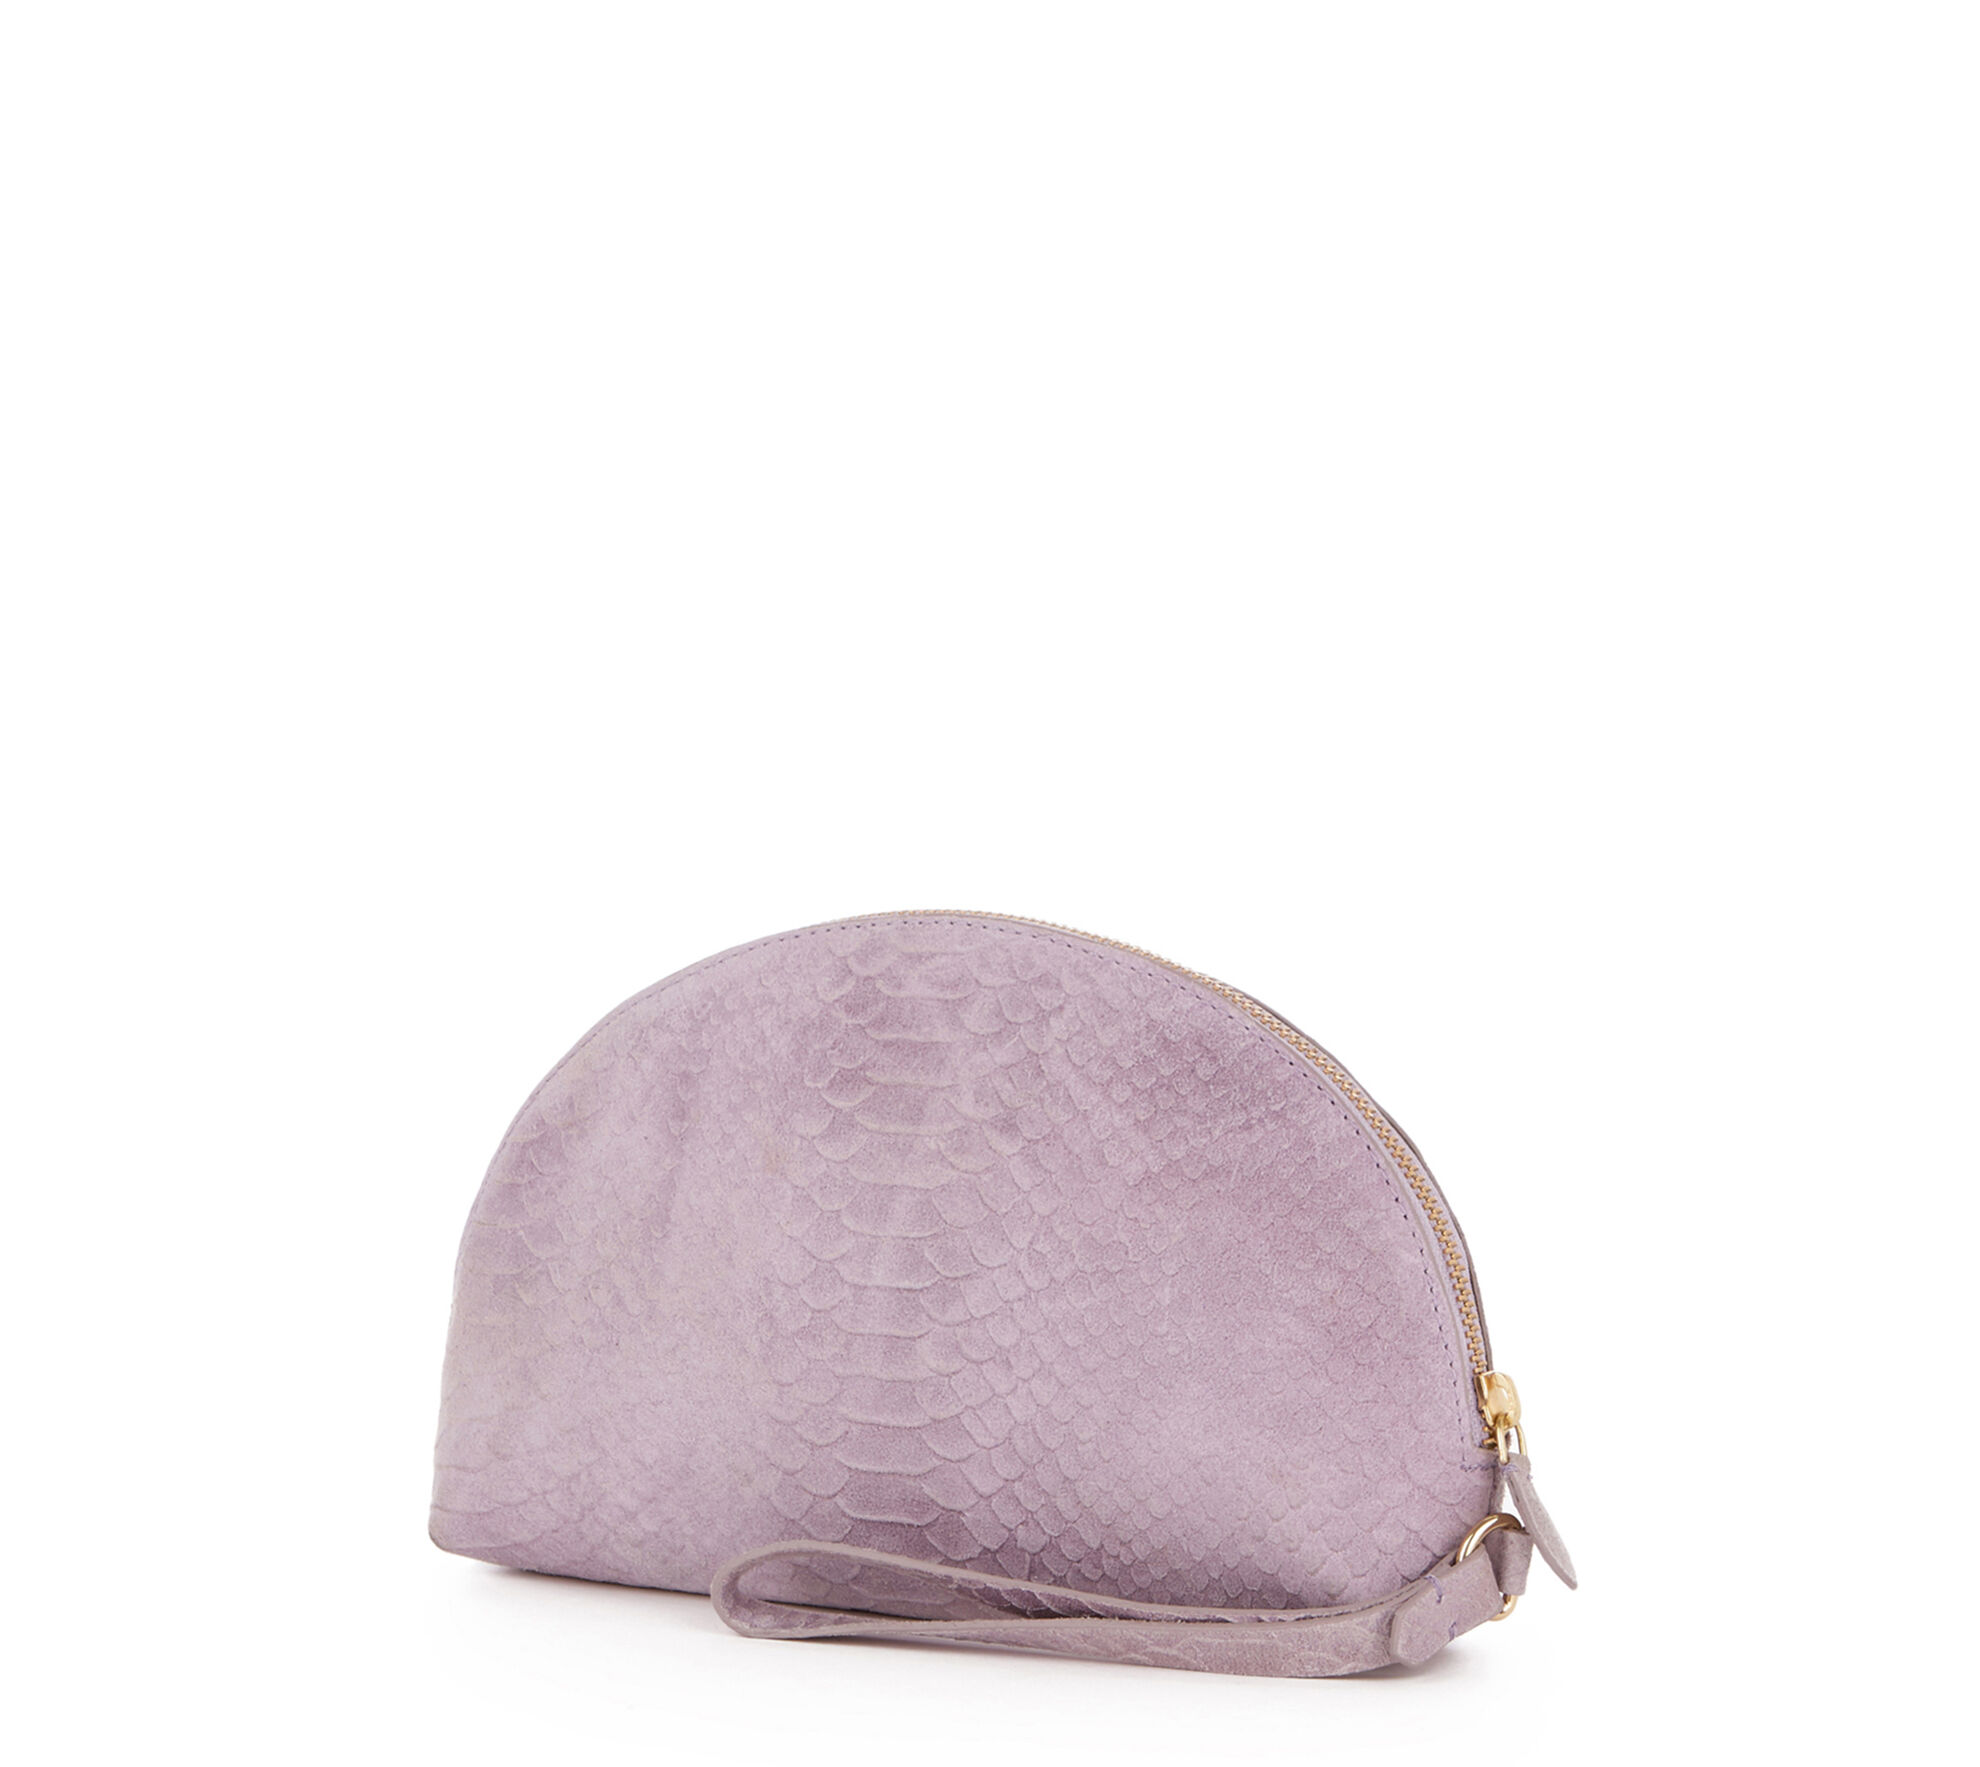 Warehouse, SUEDE EMBOSSED CLUTCH BAG Lilac 1